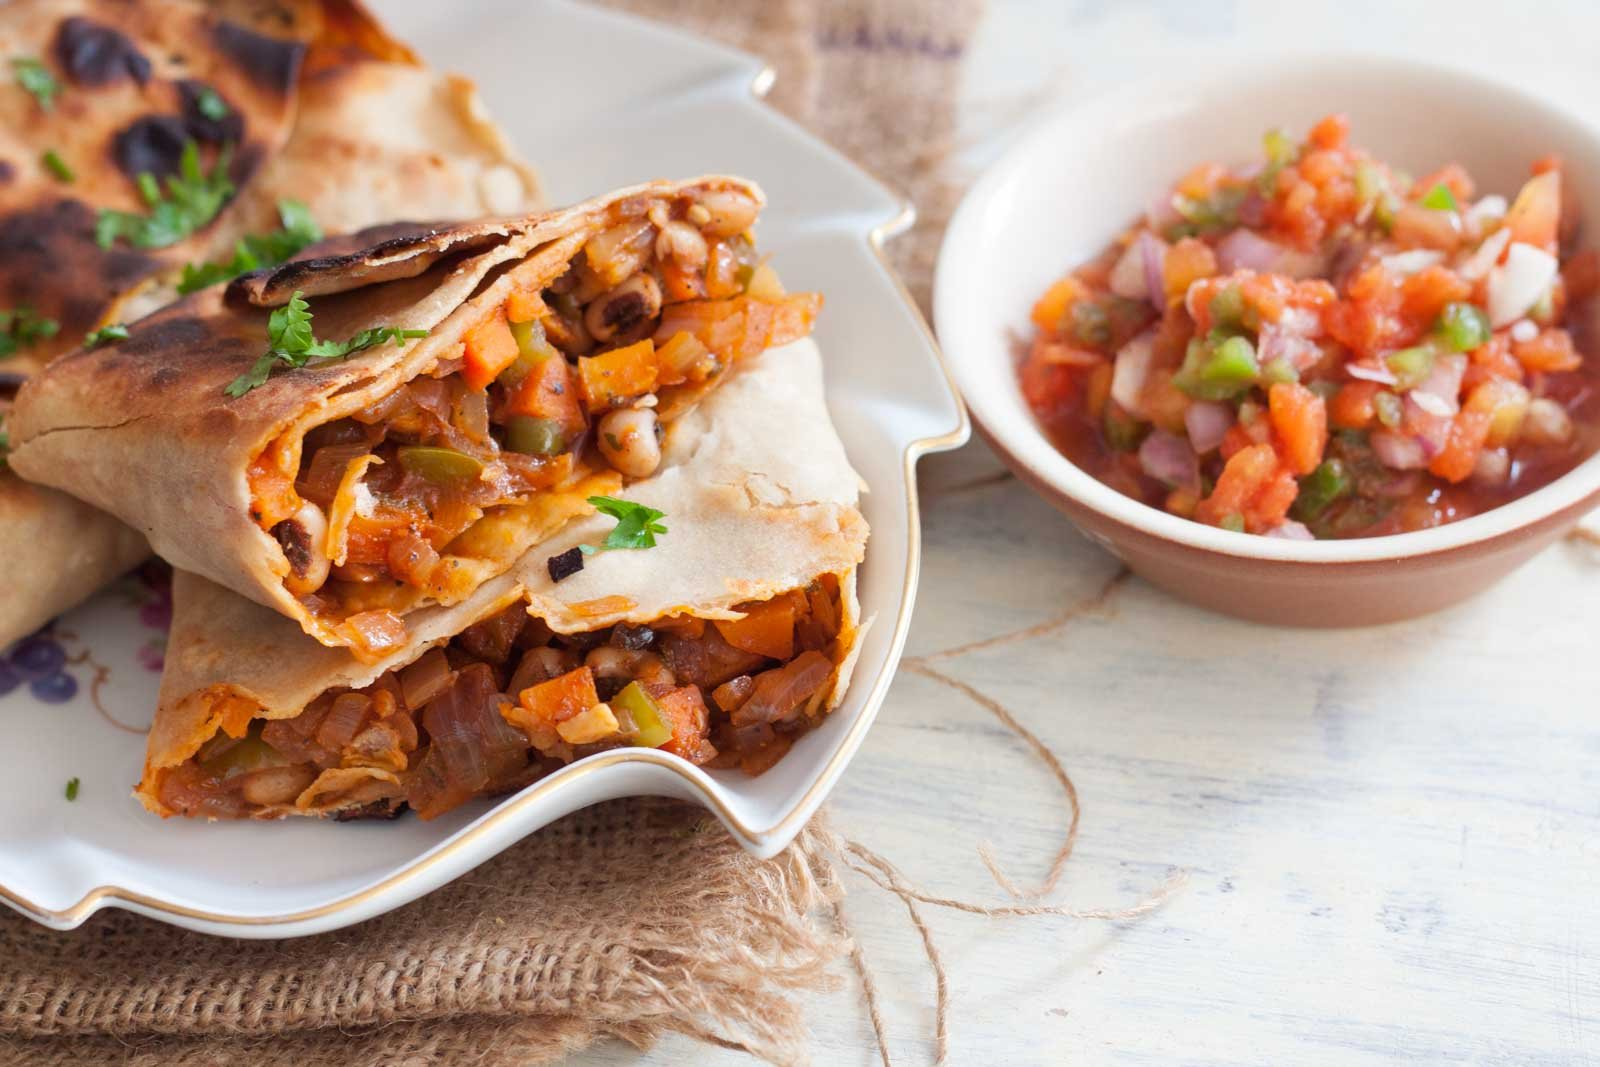 Mexican style vegetarian chimichanga recipe deep fried burrito mexican style vegetarian chimichanga recipe deep fried burrito recipe forumfinder Image collections